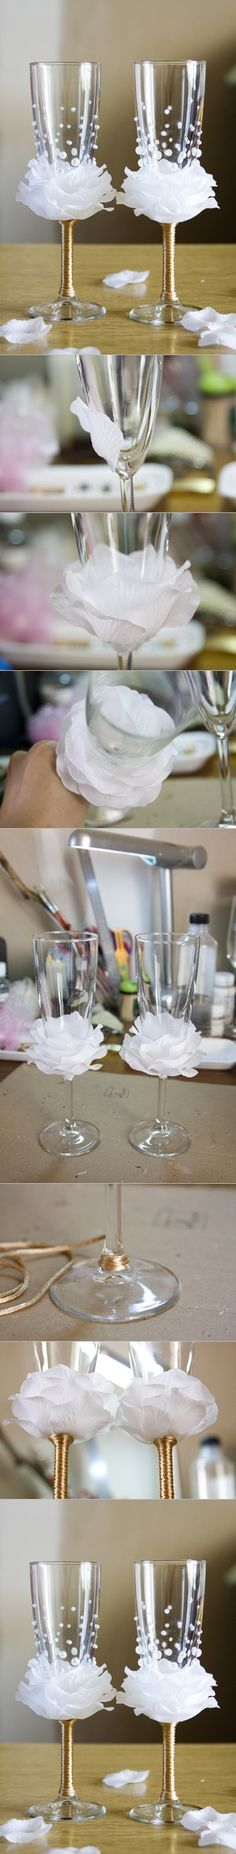 DIY Flower Bead Decorated Wine Glasses